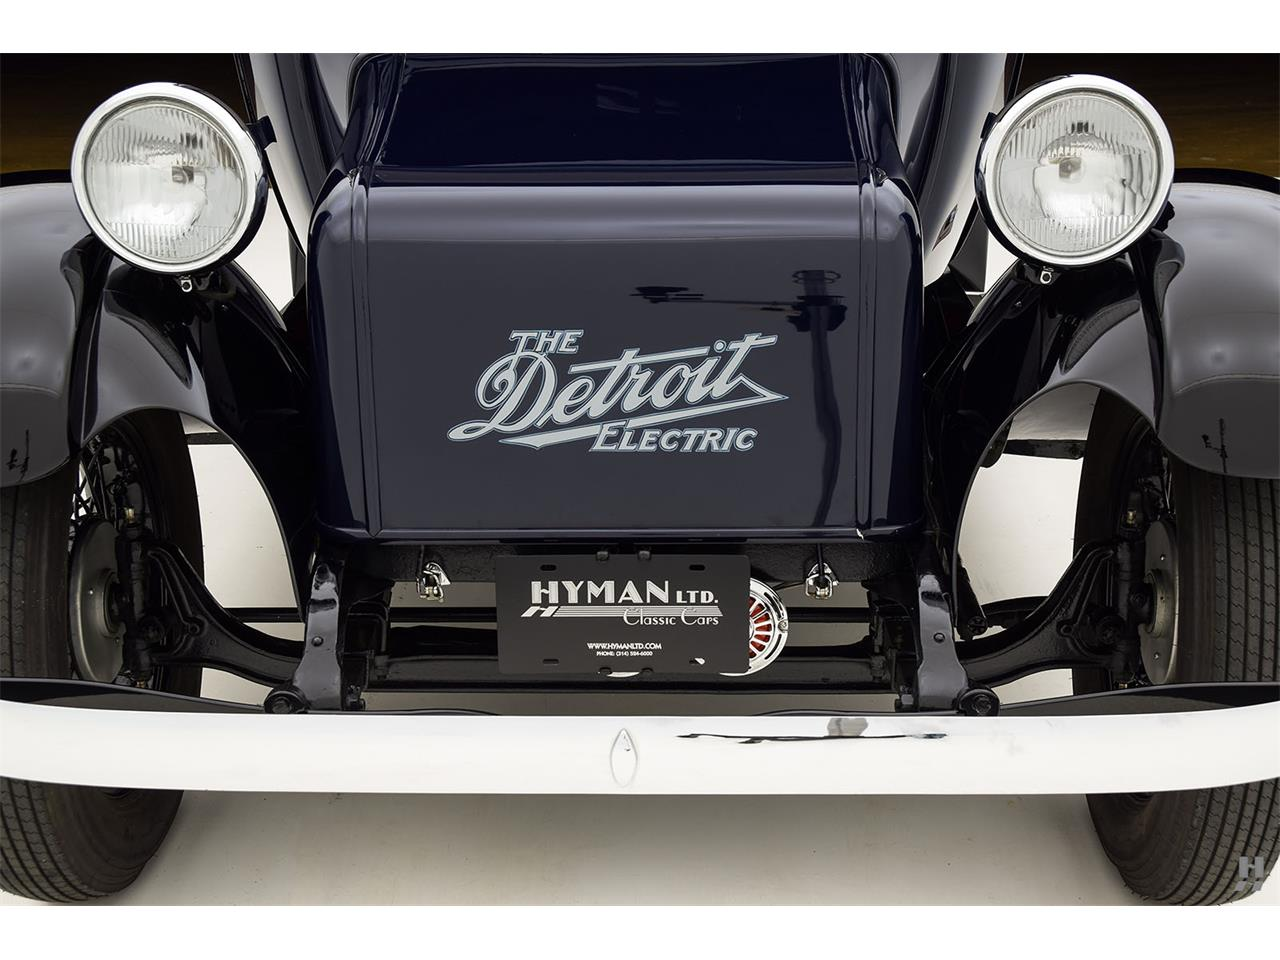 Large Picture of 1931 Model 97 - $99,500.00 Offered by Hyman Ltd. Classic Cars - L0G2